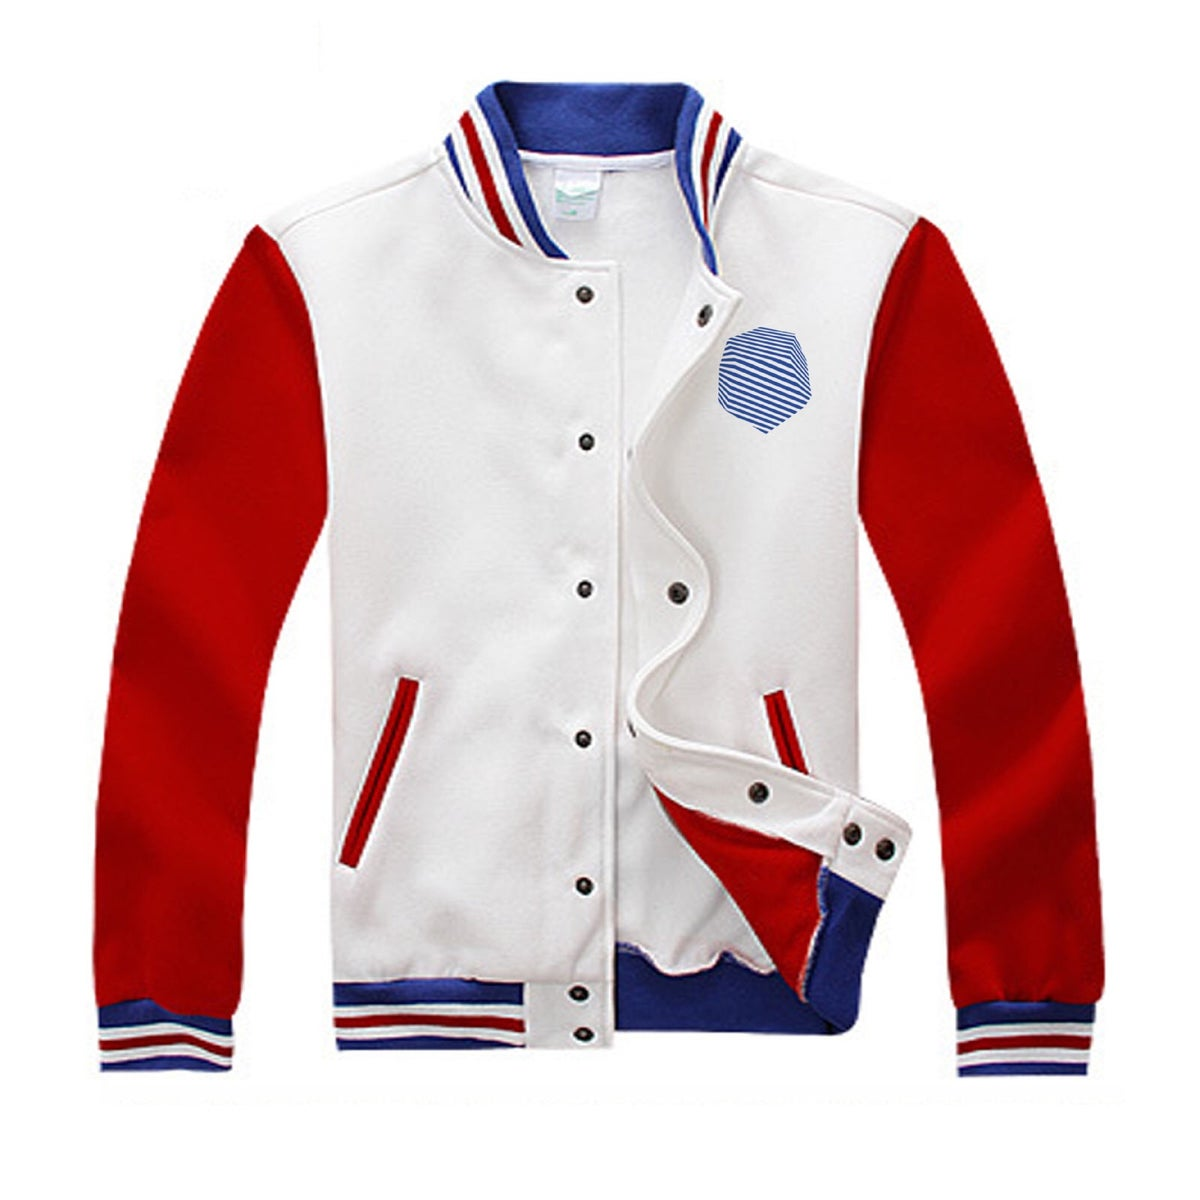 Image of GU2I Casual Cotton Varsity Jacket